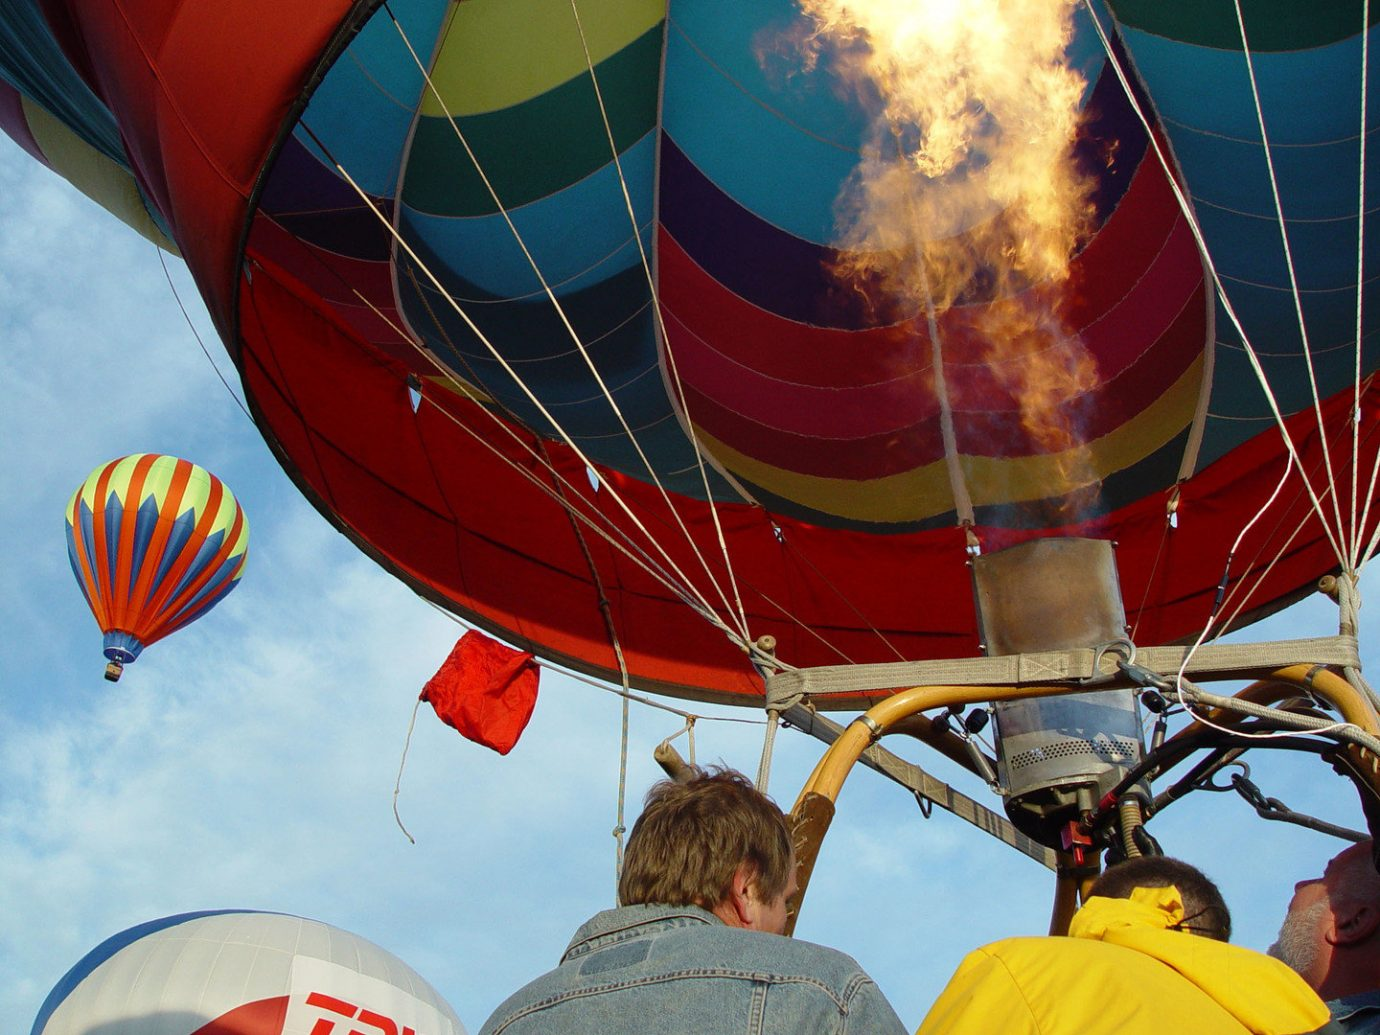 culture Hot Air Baloon markets Outdoor Activities Town Trip Ideas balloon aircraft hot air ballooning Hot Air Balloon transport outdoor vehicle person atmosphere of earth toy colorful